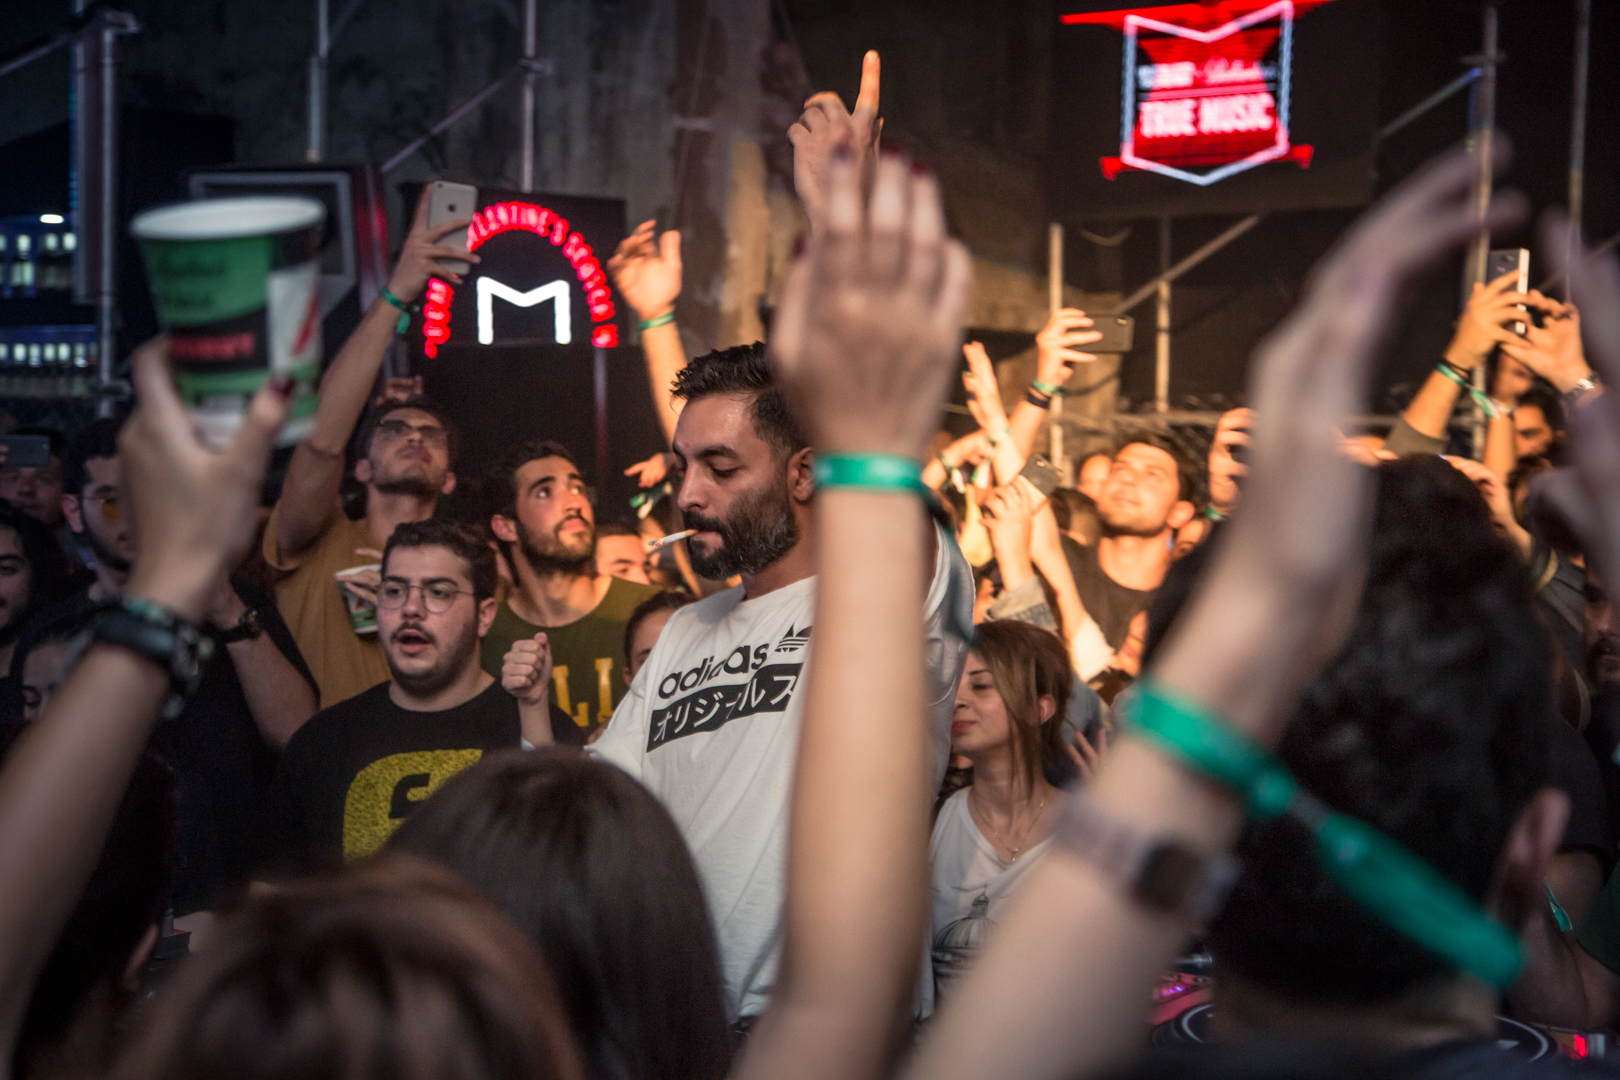 CLUBBING IN BEIRUT: DANCING IN THE FACE OF ADVERSITY